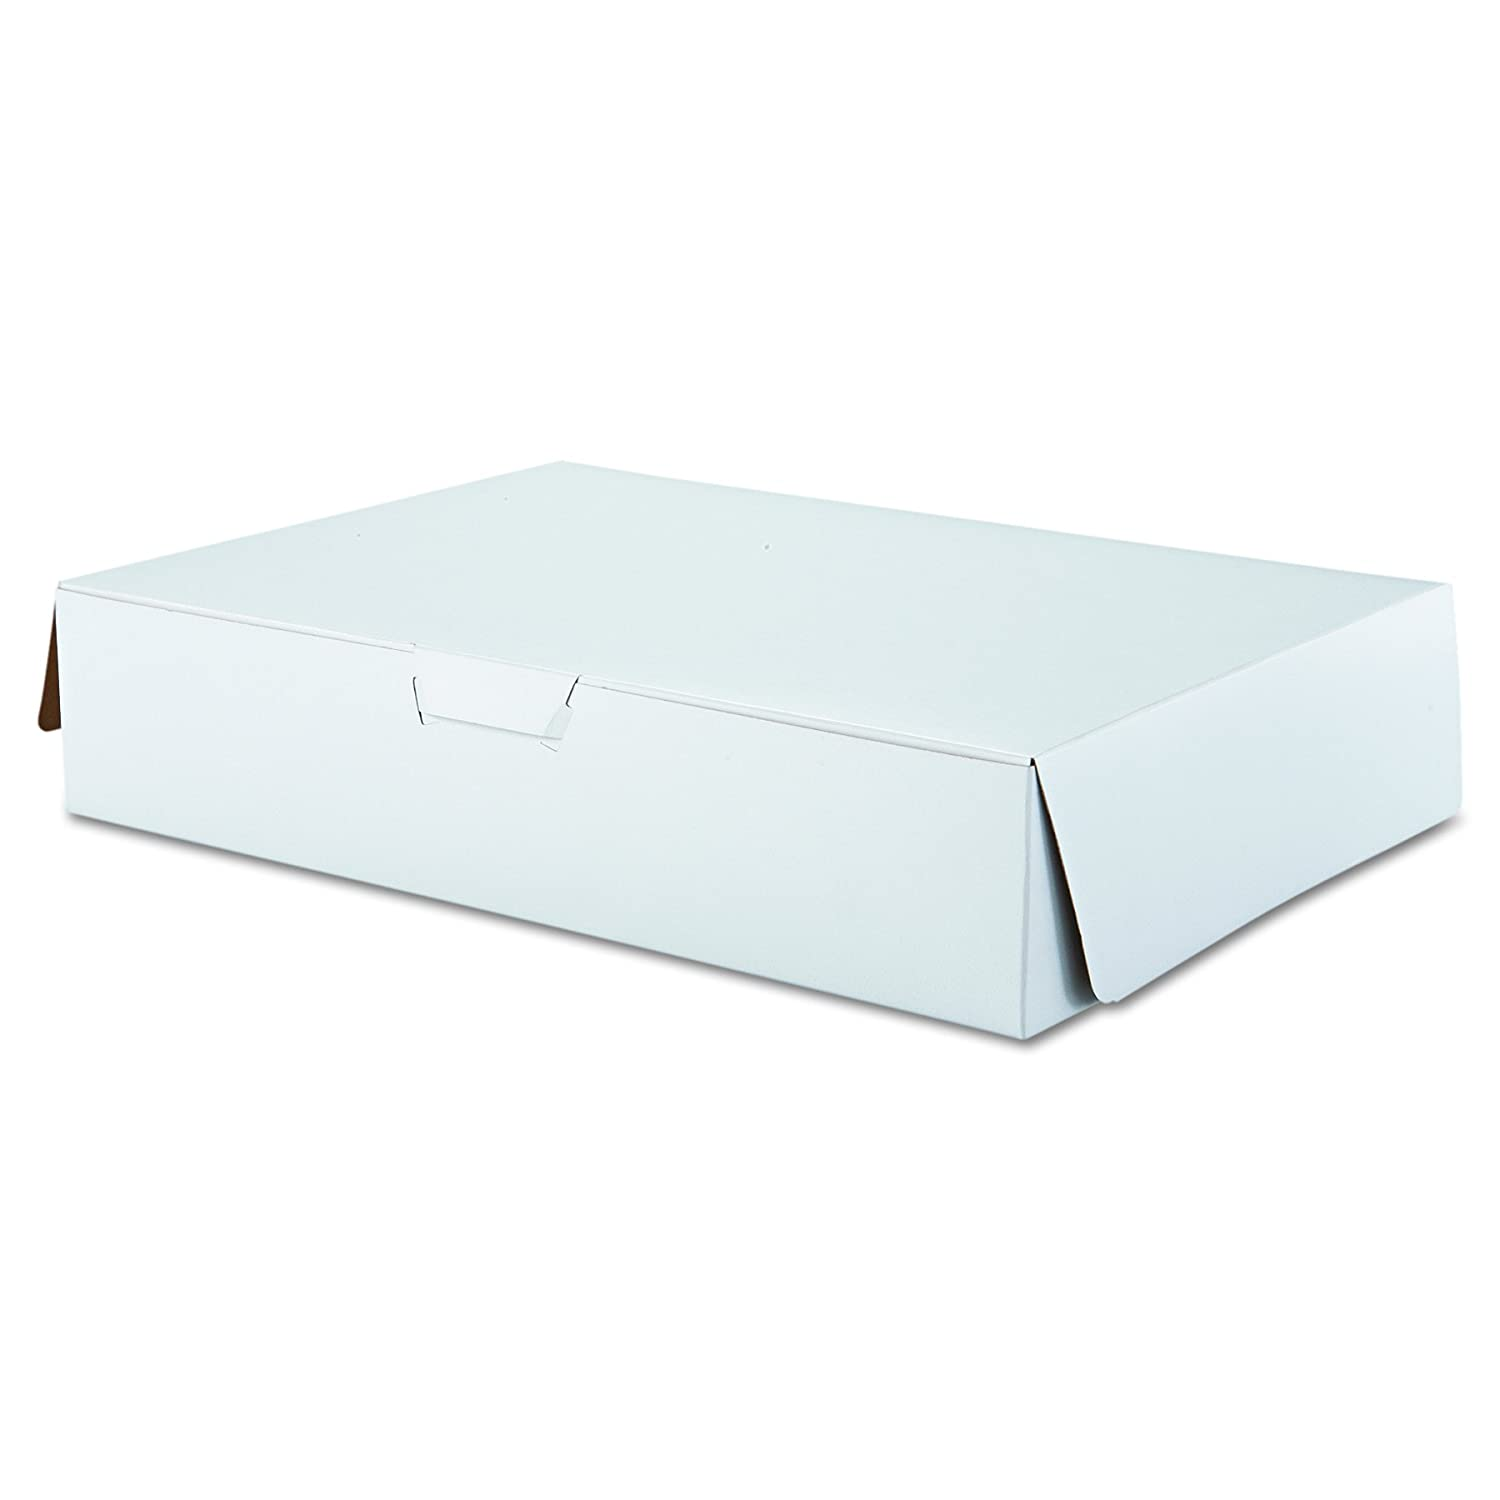 "Southern Champion Tray 1029 Premium Clay Coated Kraft Paperboard White Non-Window Sheet Cake and Utility Box, 19"" Length x 14"" Width x 4"" Height, 1/2 Sheet (Case of 50)"